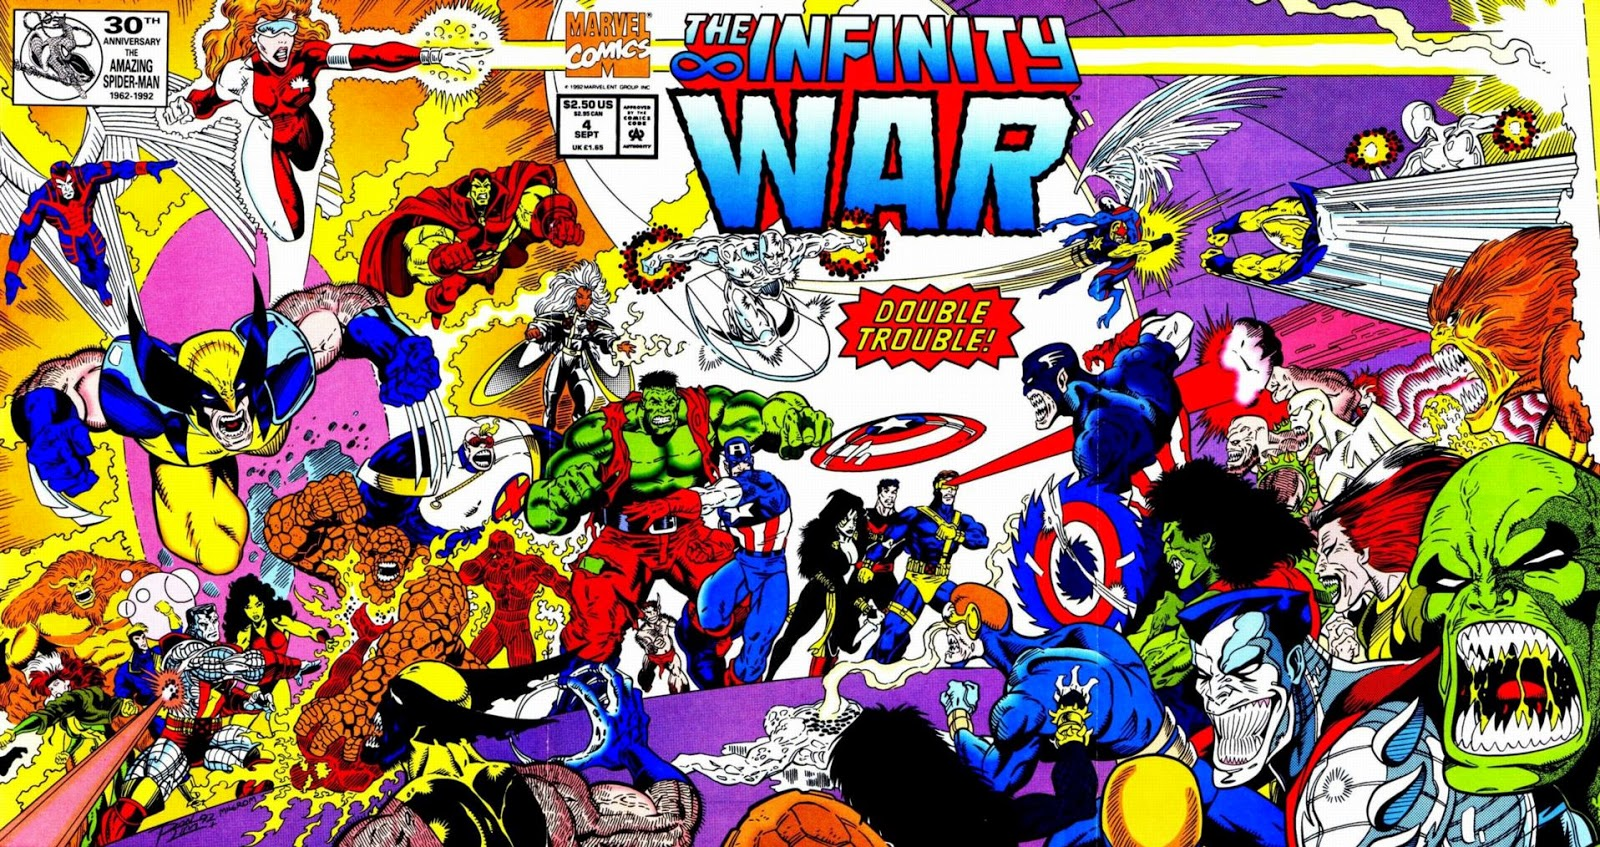 the infinity war | viewcomic reading comics online for free 2018